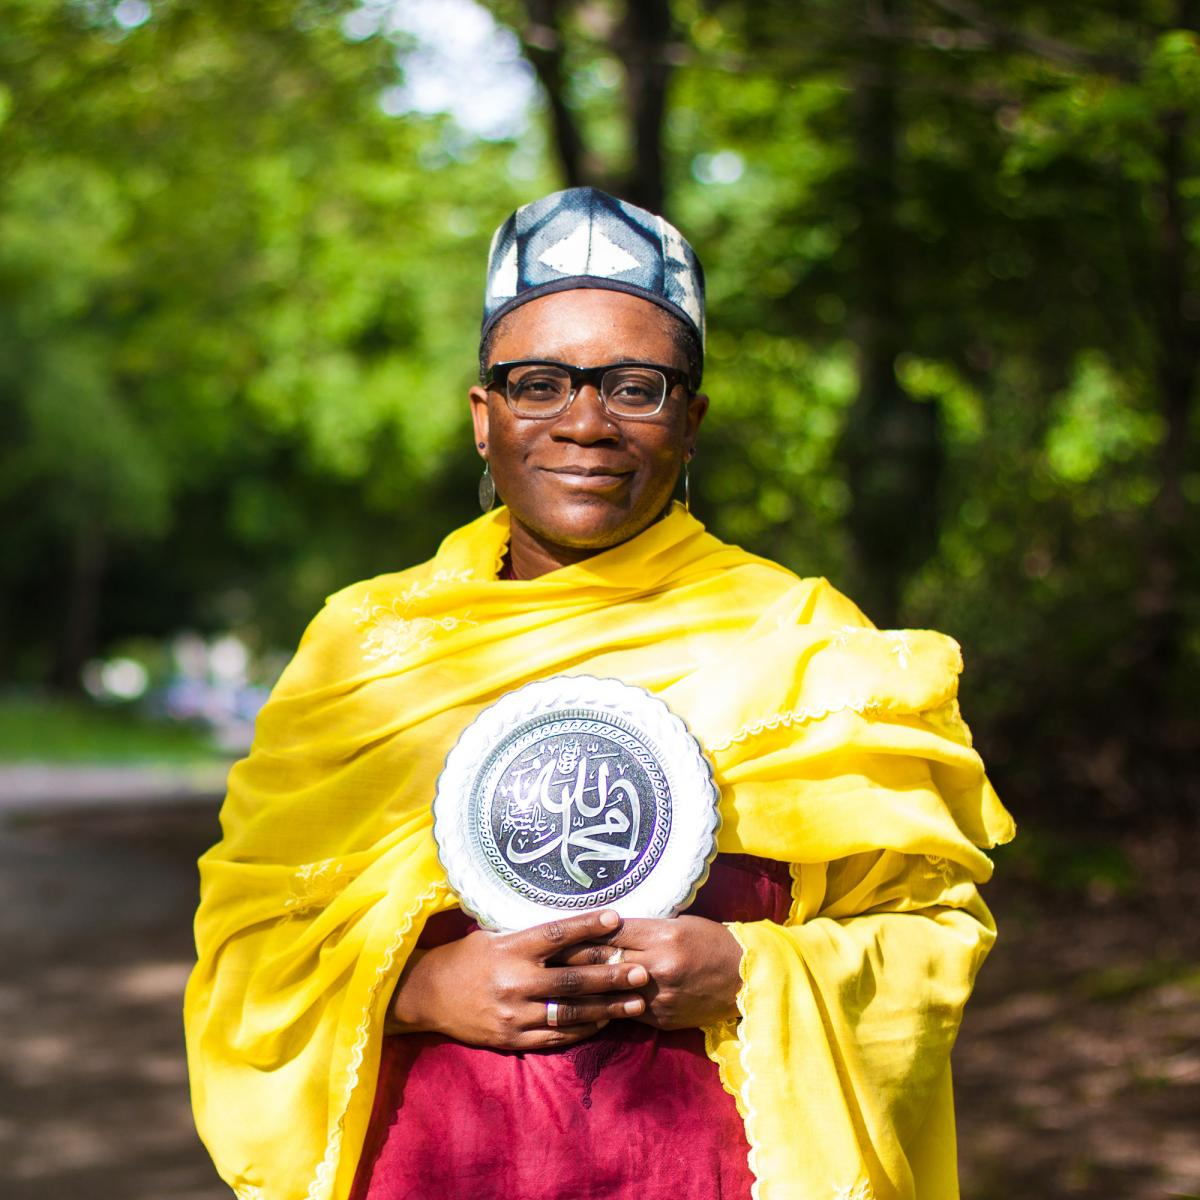 """Terna is a Nigerian-Liberian American who identifies as black and bisexual. She lives in Boston and says she is still struggling with a lack of acceptance from some members of her family. """"I think I learn to live with it differently at different moments i"""